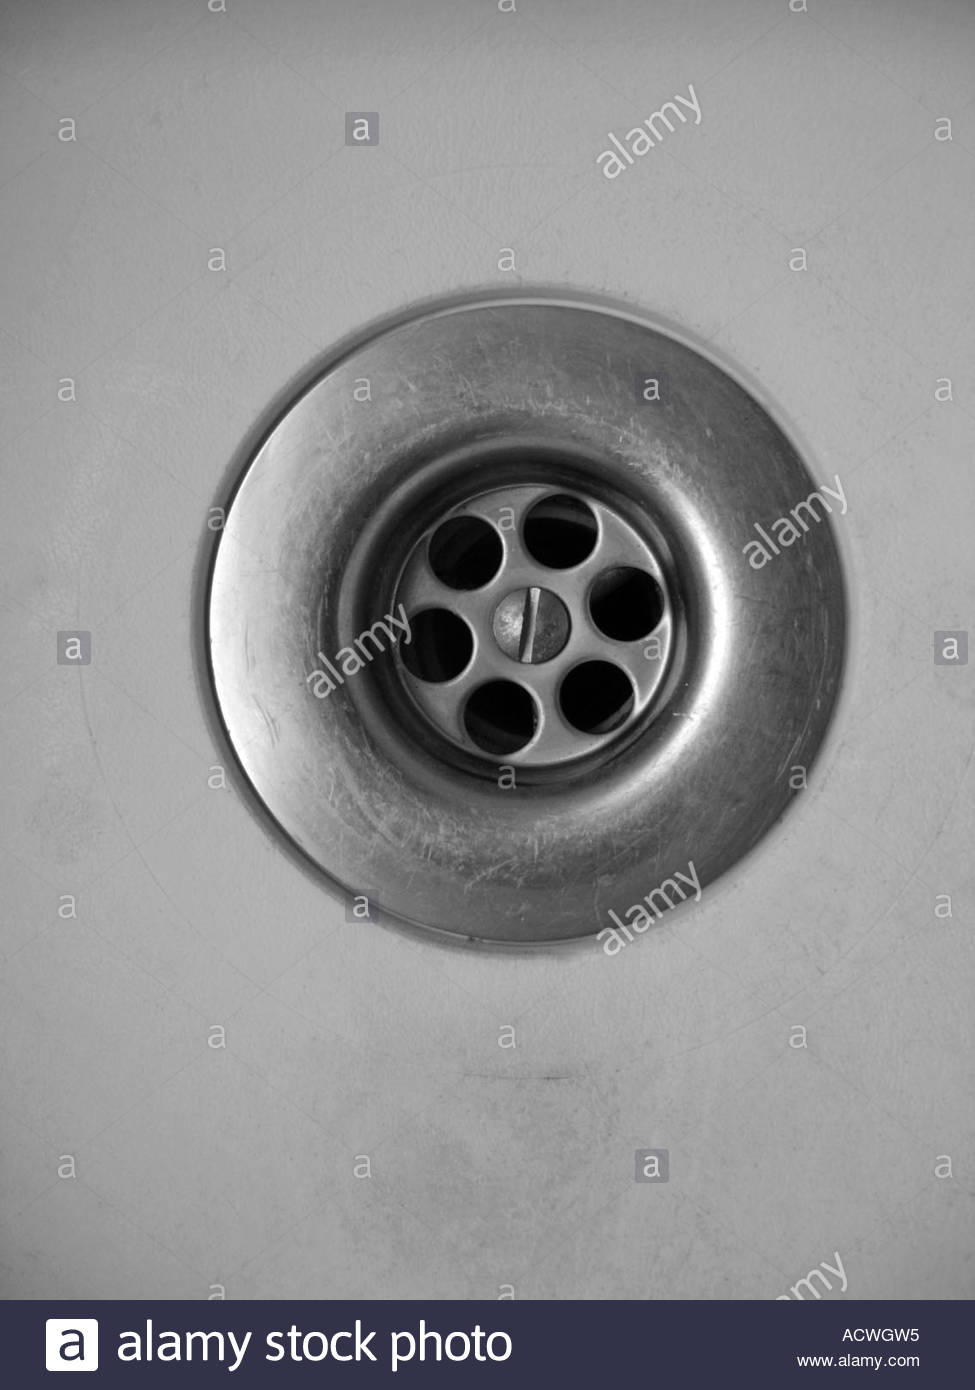 A sink and plughole - Stock Image